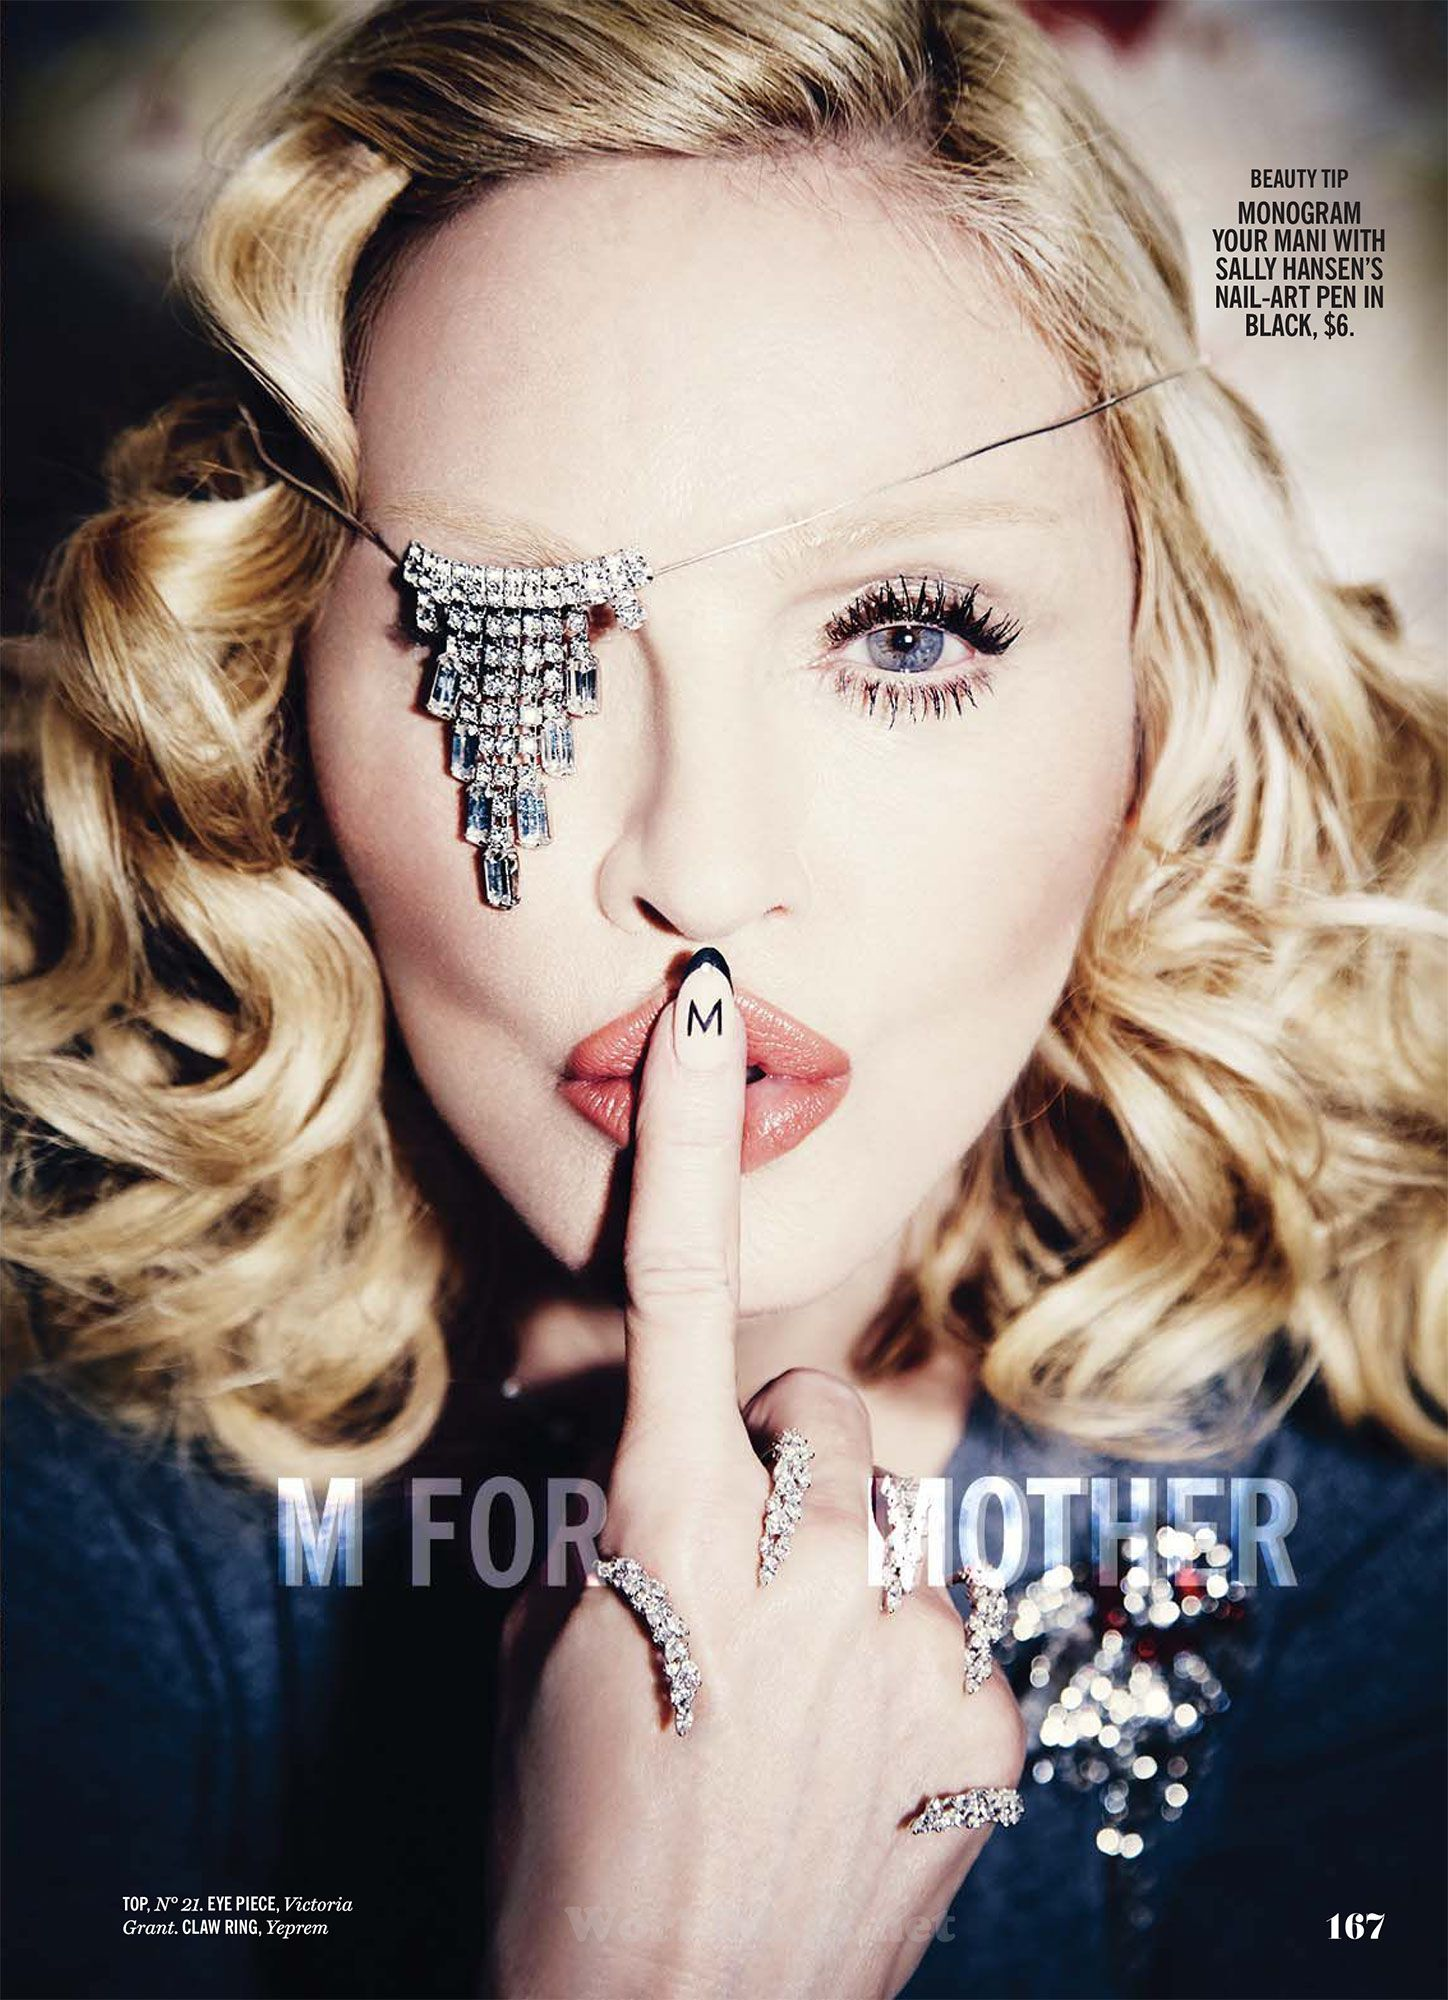 Update turkey edition hq scans madonna by ellen von unwerth for update turkey edition hq scans madonna by ellen von unwerth for cosmopolitan may 2015 issue biocorpaavc